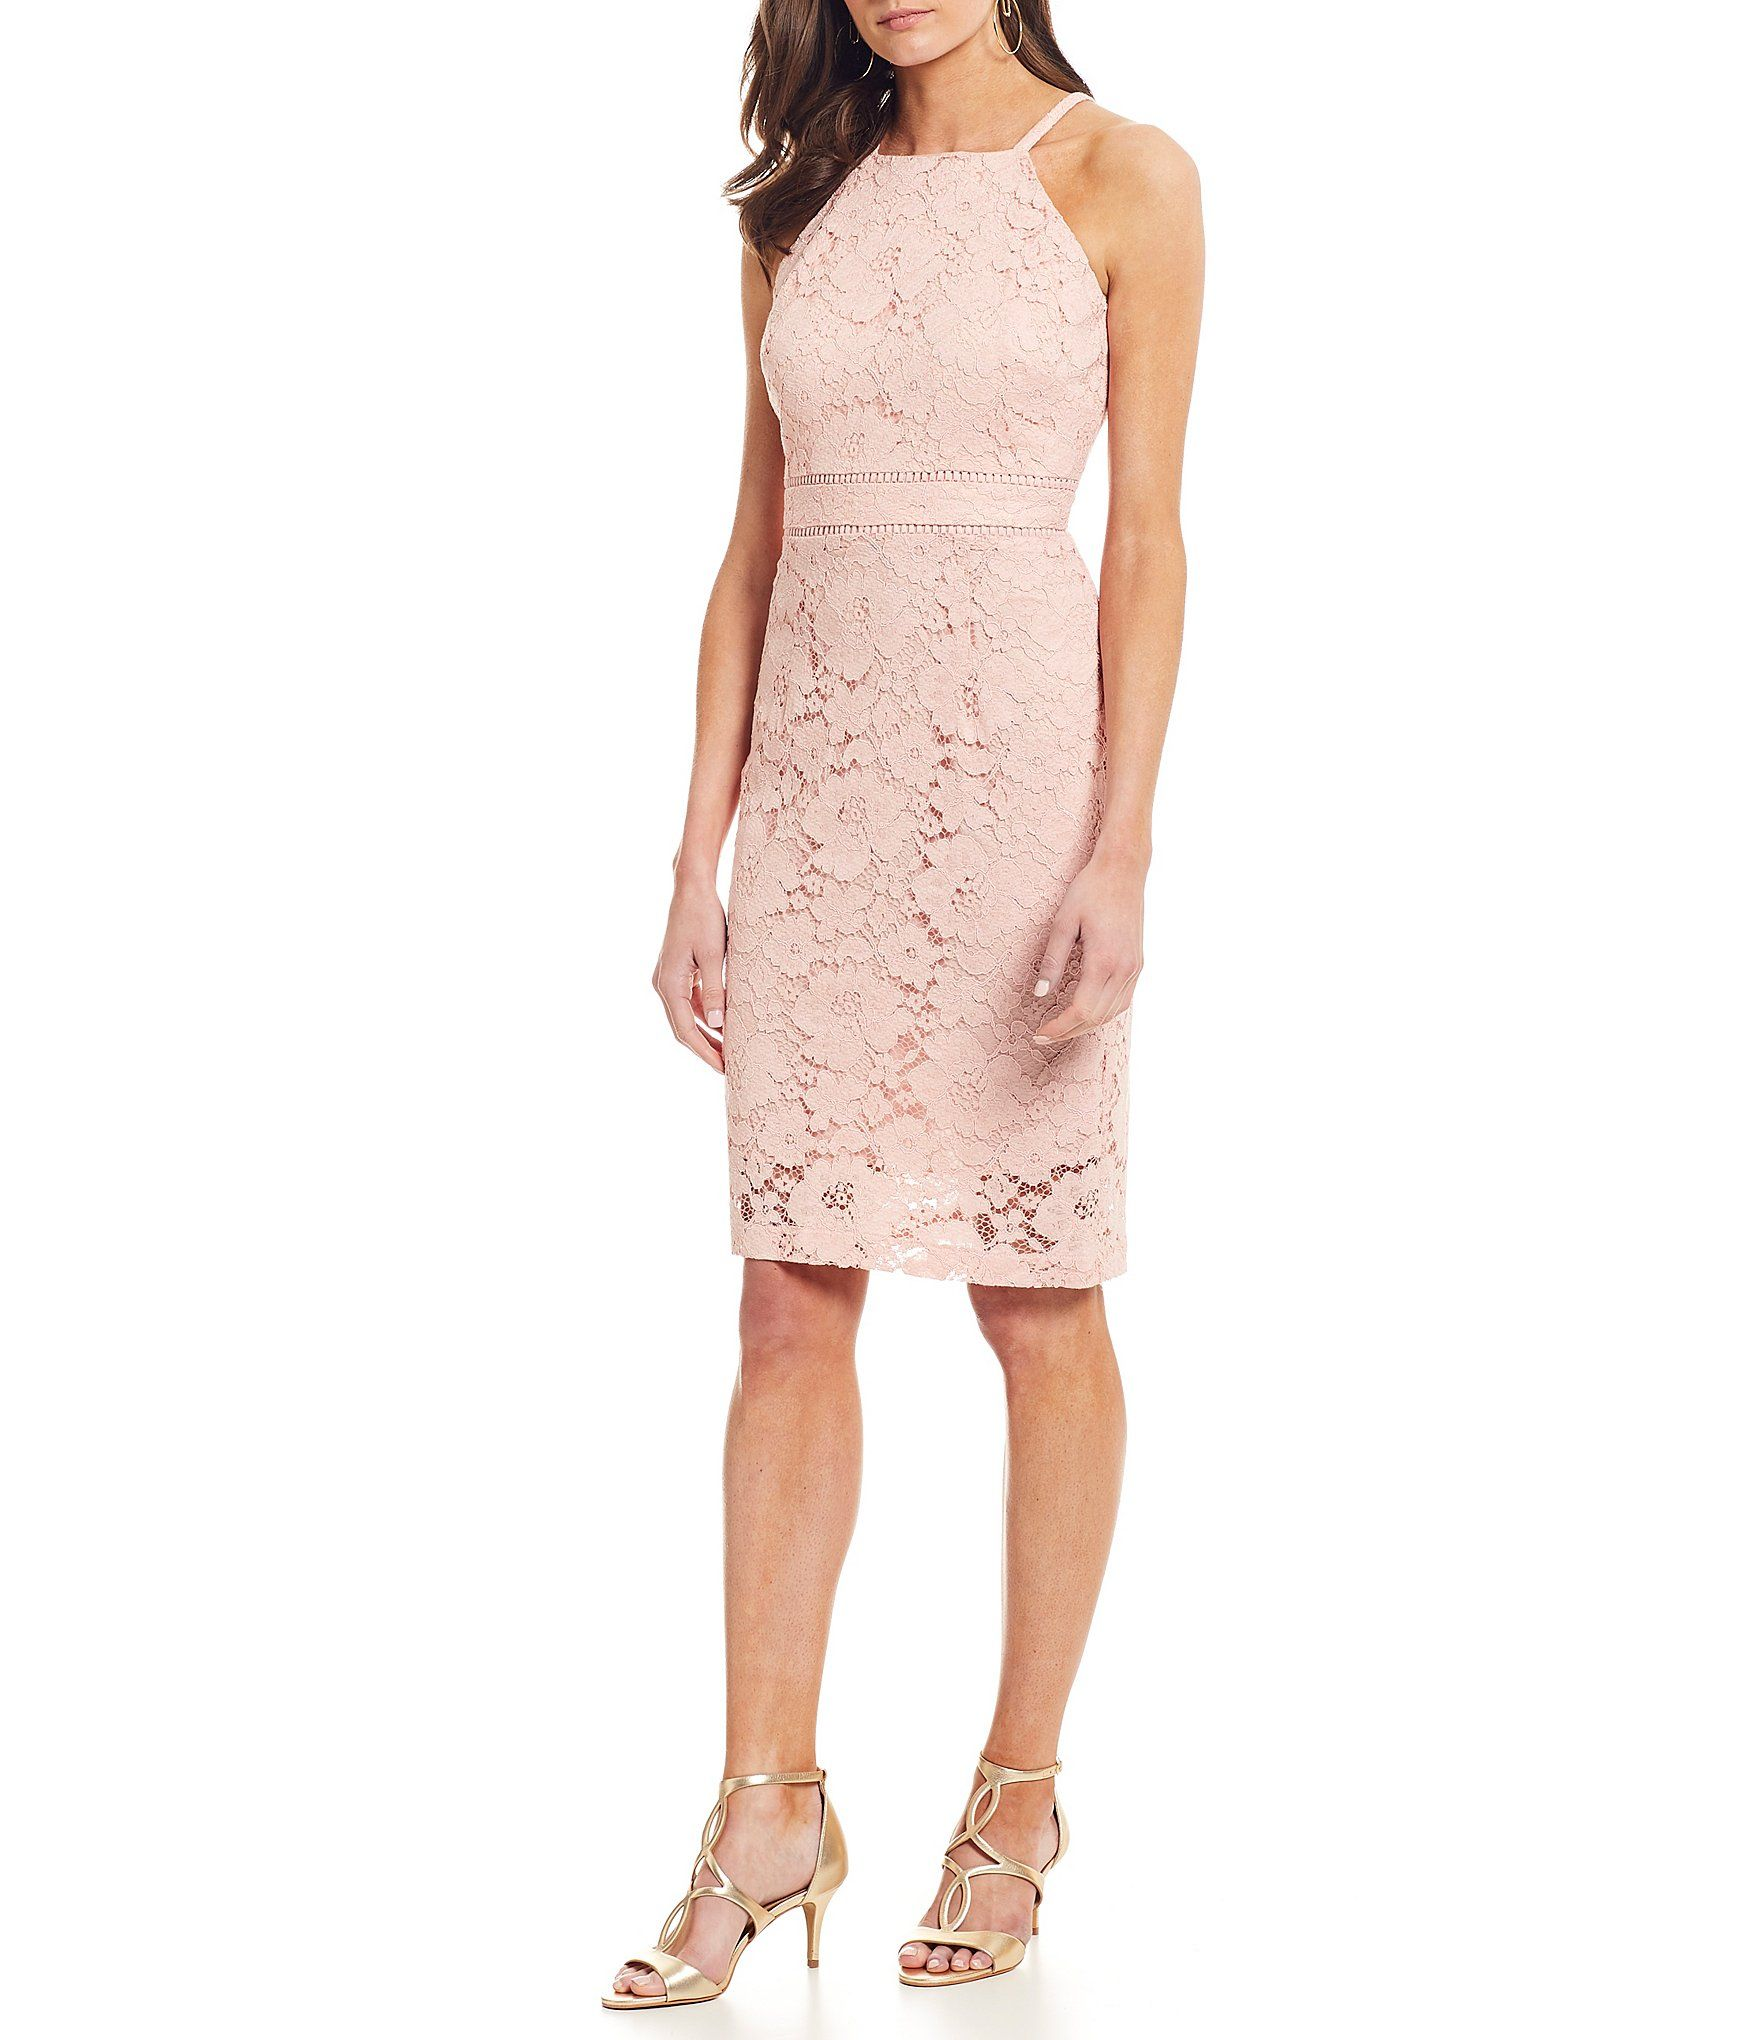 Shop For Vince Camuto Sleeveless Halter Lace Sheath Dress At Dillards Com Visit Dillards Com To Find Clothing Accessorie Dresses Lace Dress Lace Sheath Dress [ 2040 x 1760 Pixel ]